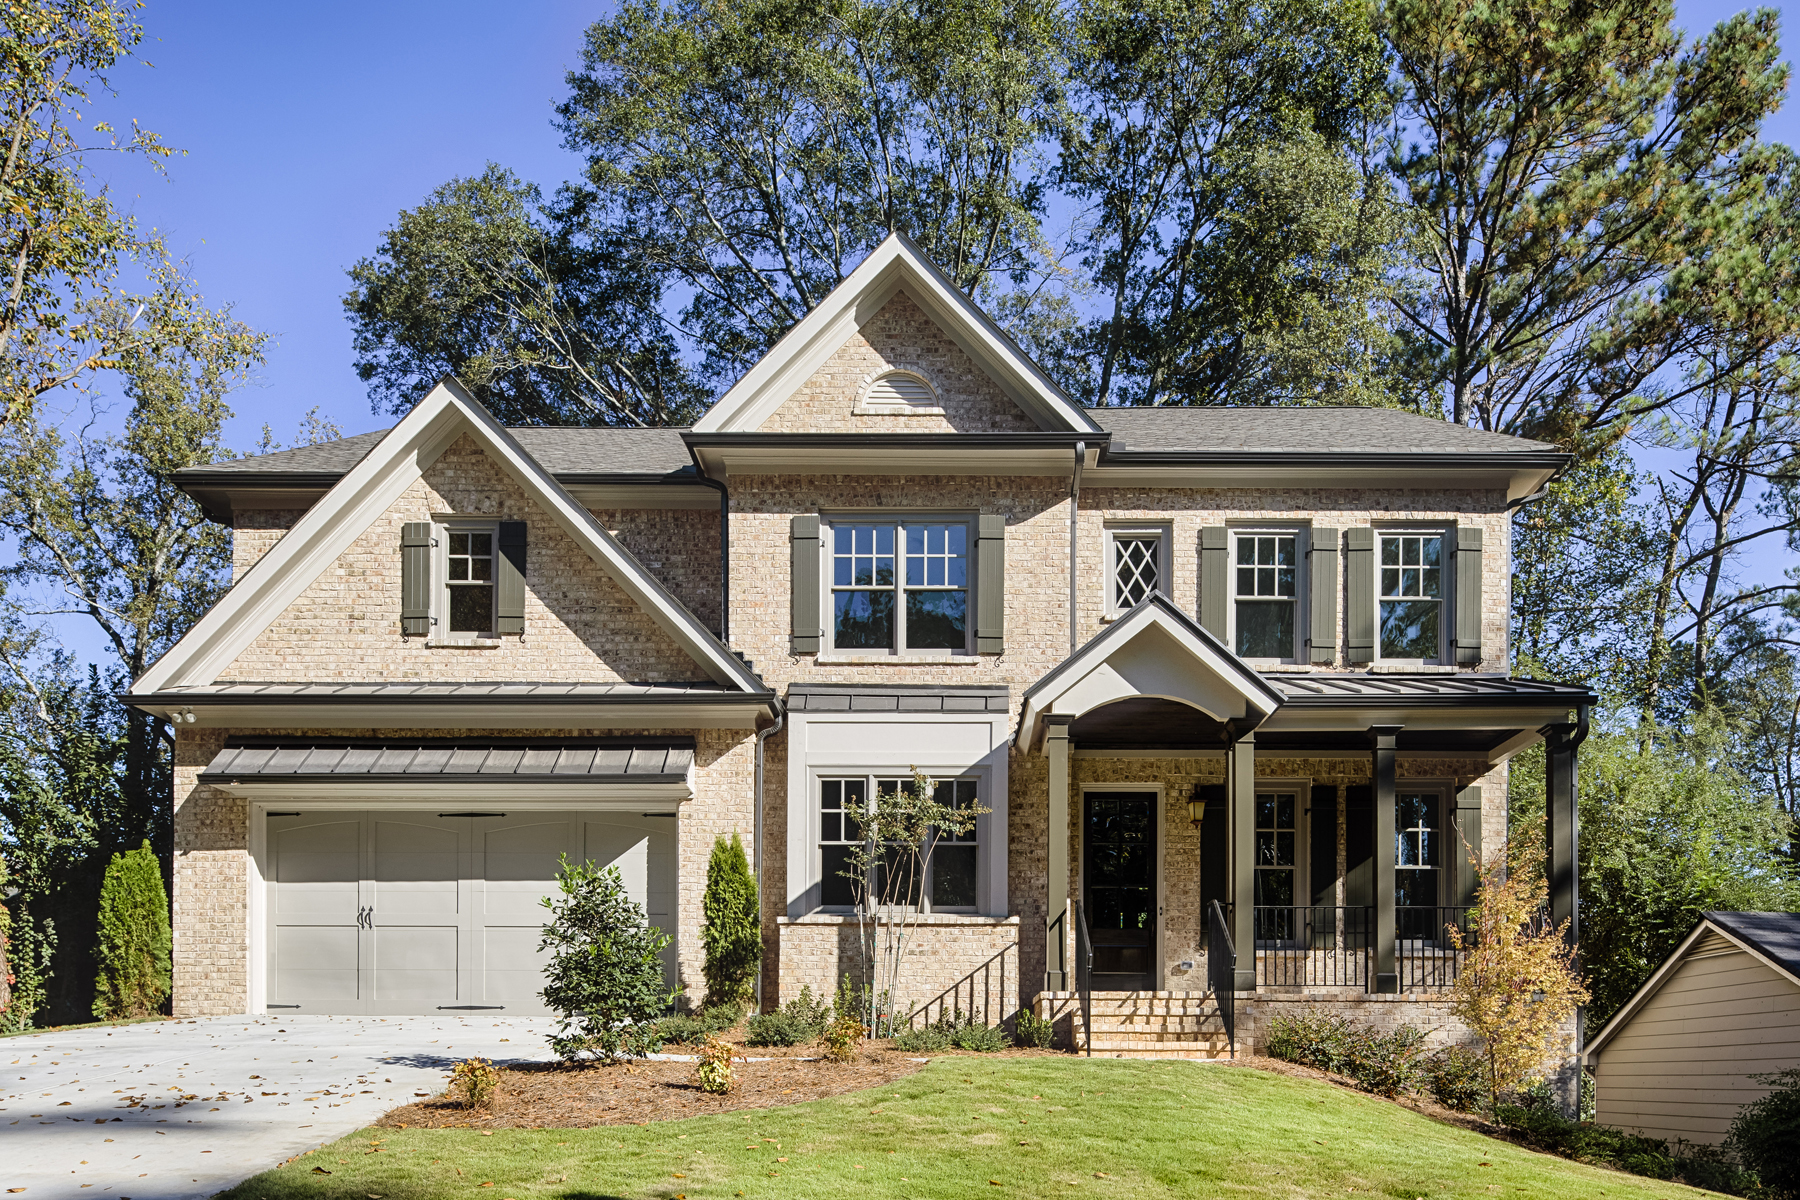 Single Family Home for Active at Beautiful new construction in the heart of Buckhead! 1775 Warren Court NW Atlanta, Georgia 30318 United States